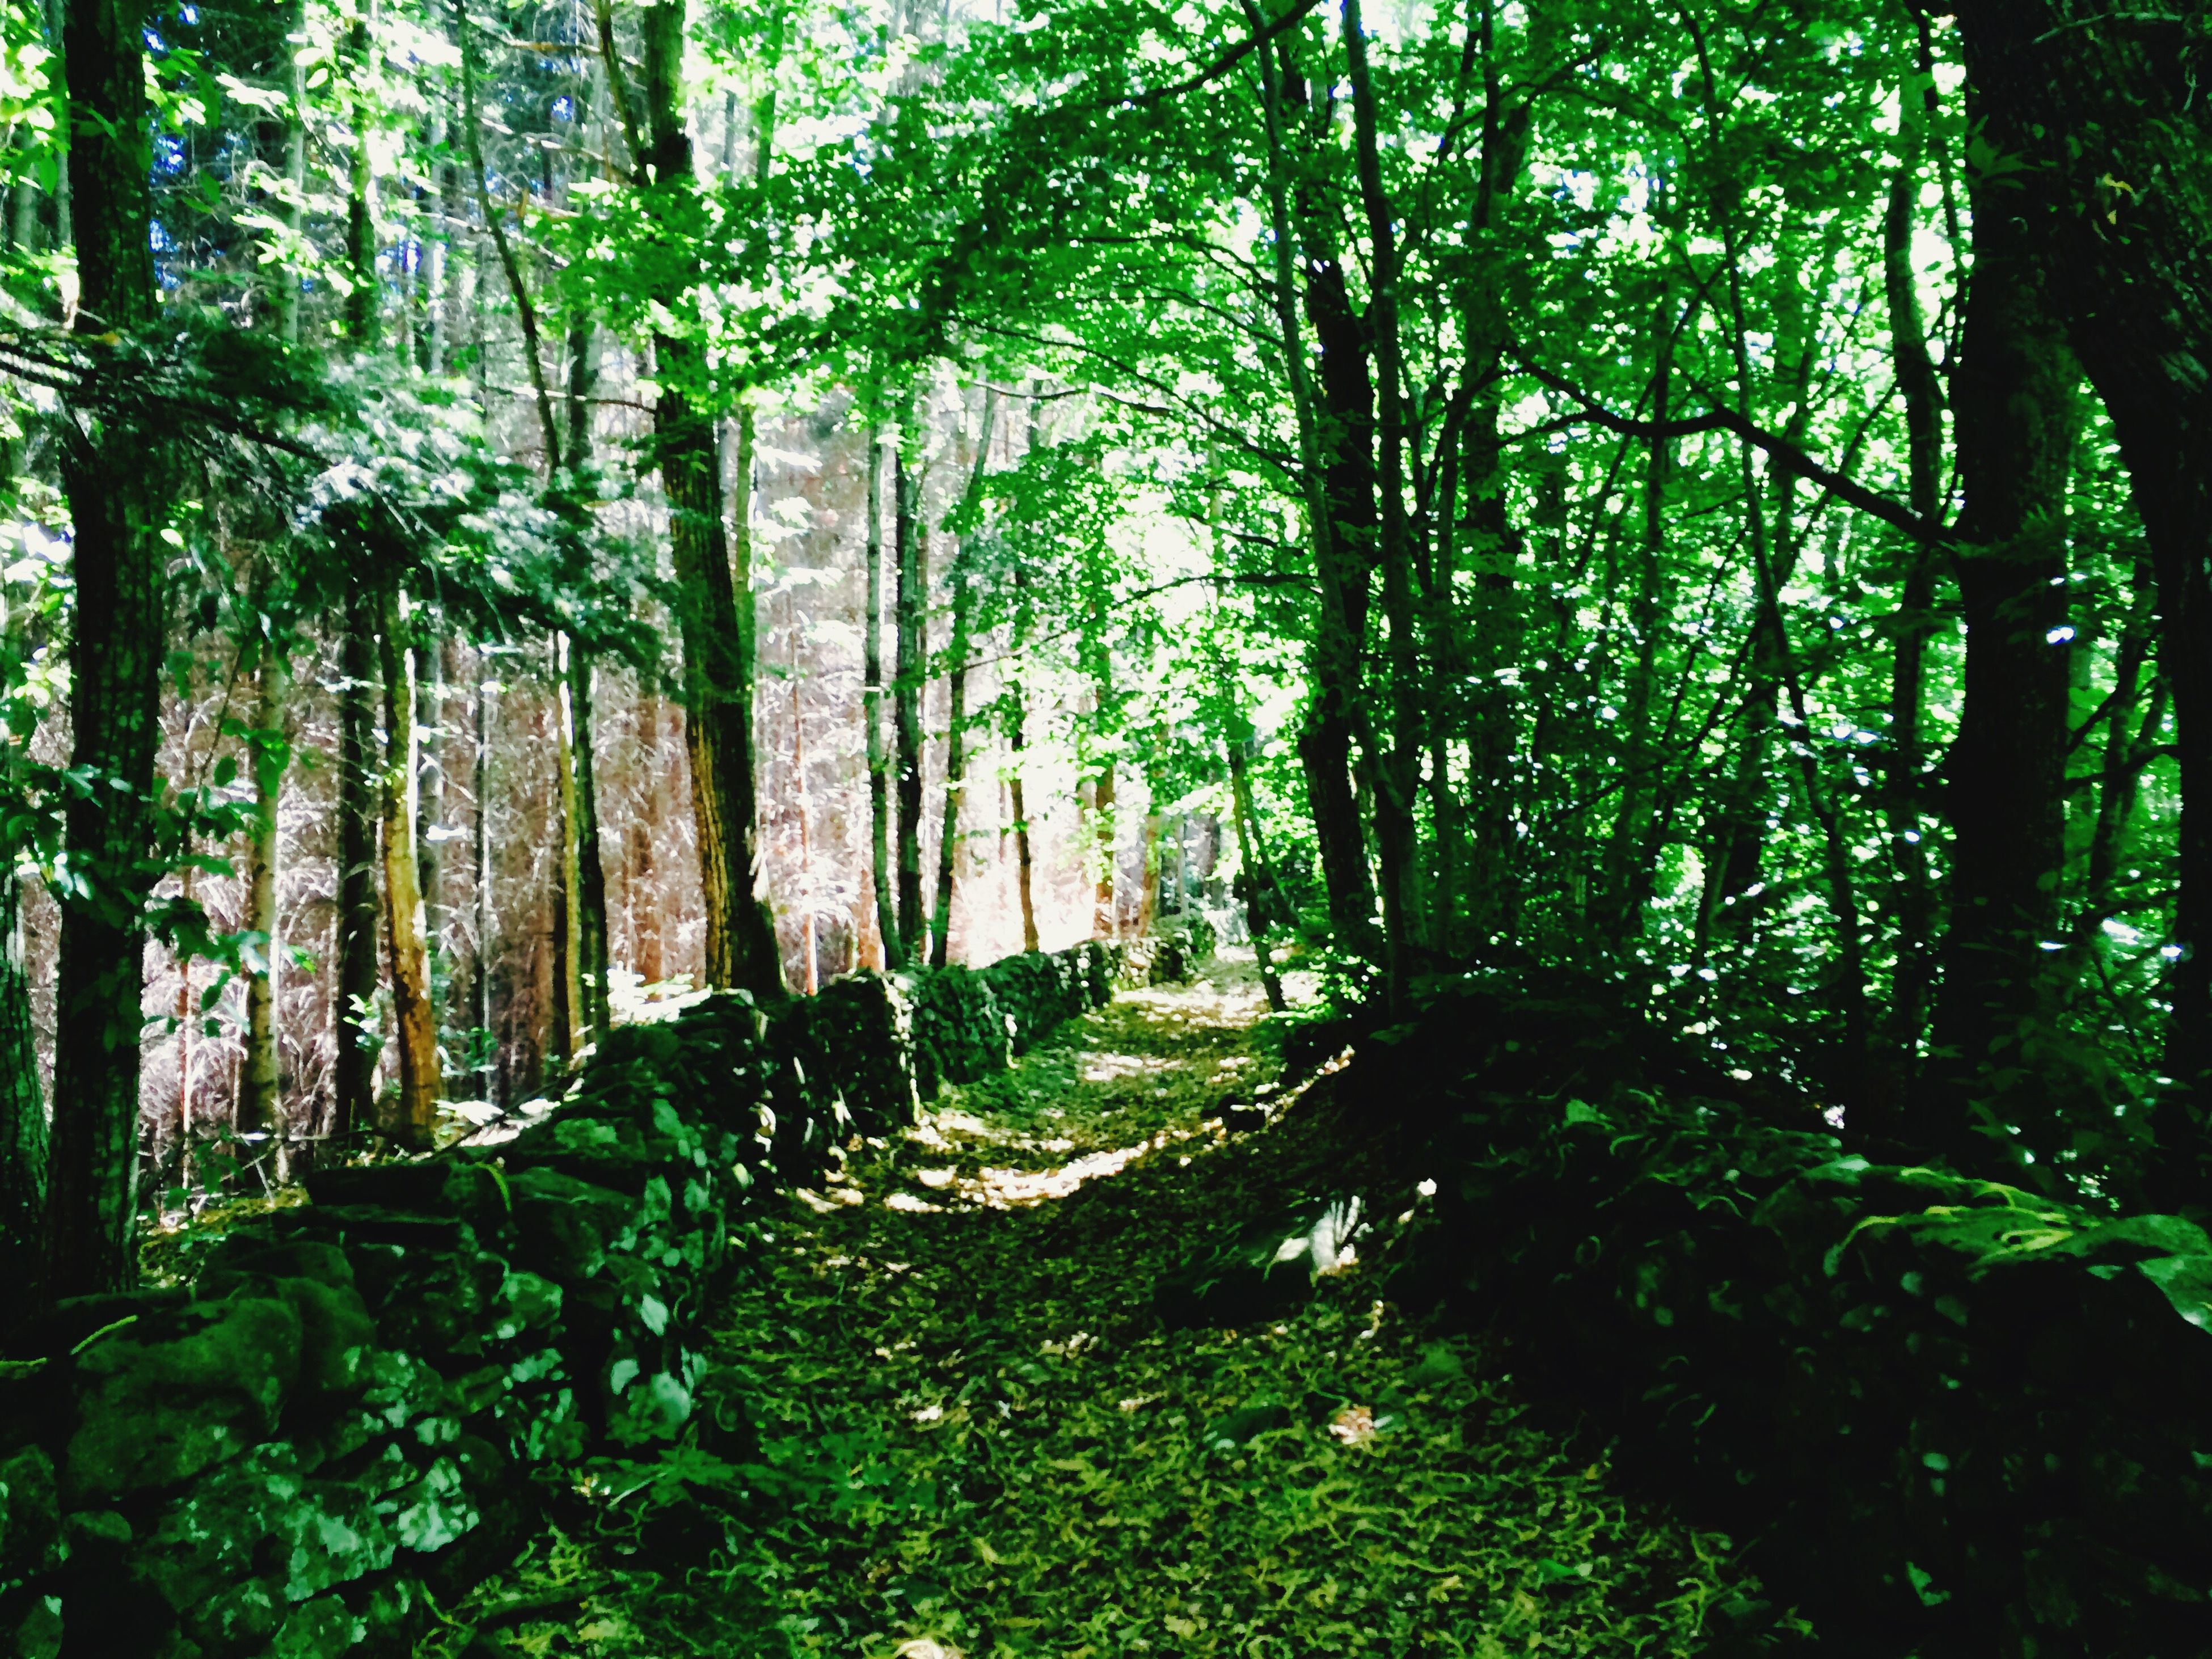 tree, forest, growth, tree trunk, tranquility, woodland, green color, nature, tranquil scene, beauty in nature, lush foliage, scenics, sunlight, branch, non-urban scene, plant, day, no people, outdoors, woods